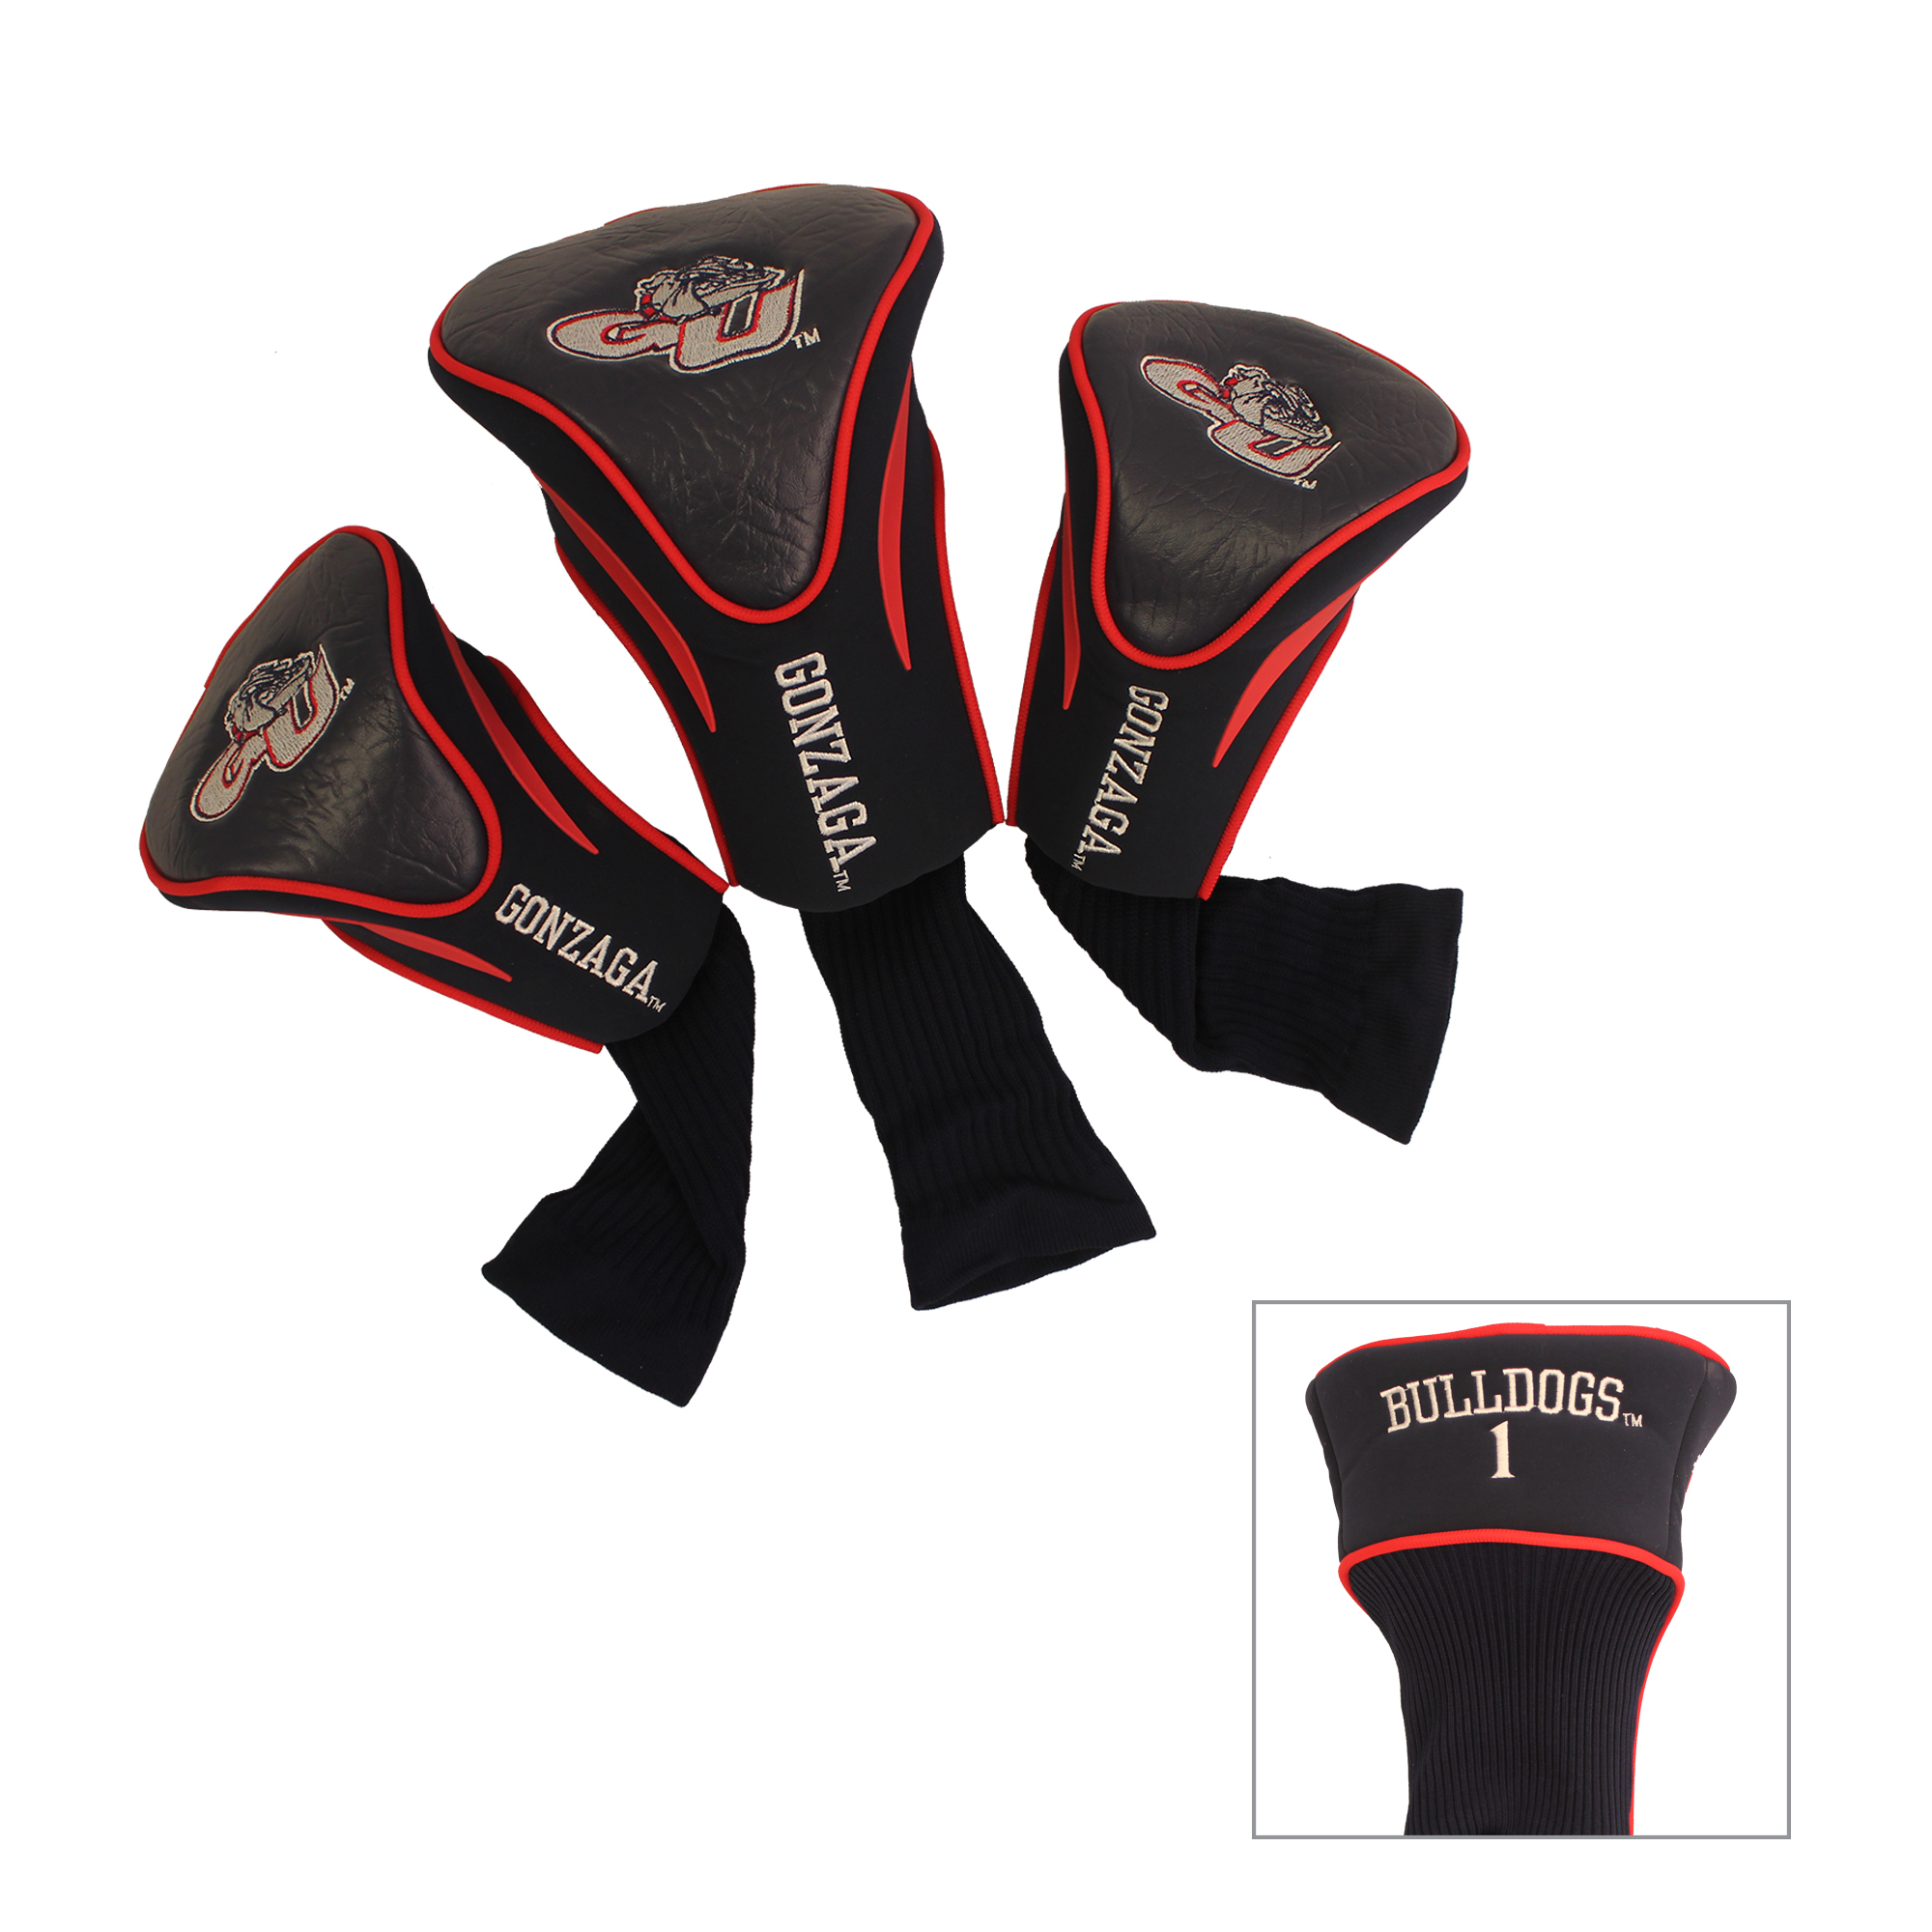 3 Pack Contour Golf Head Covers Gonzaga